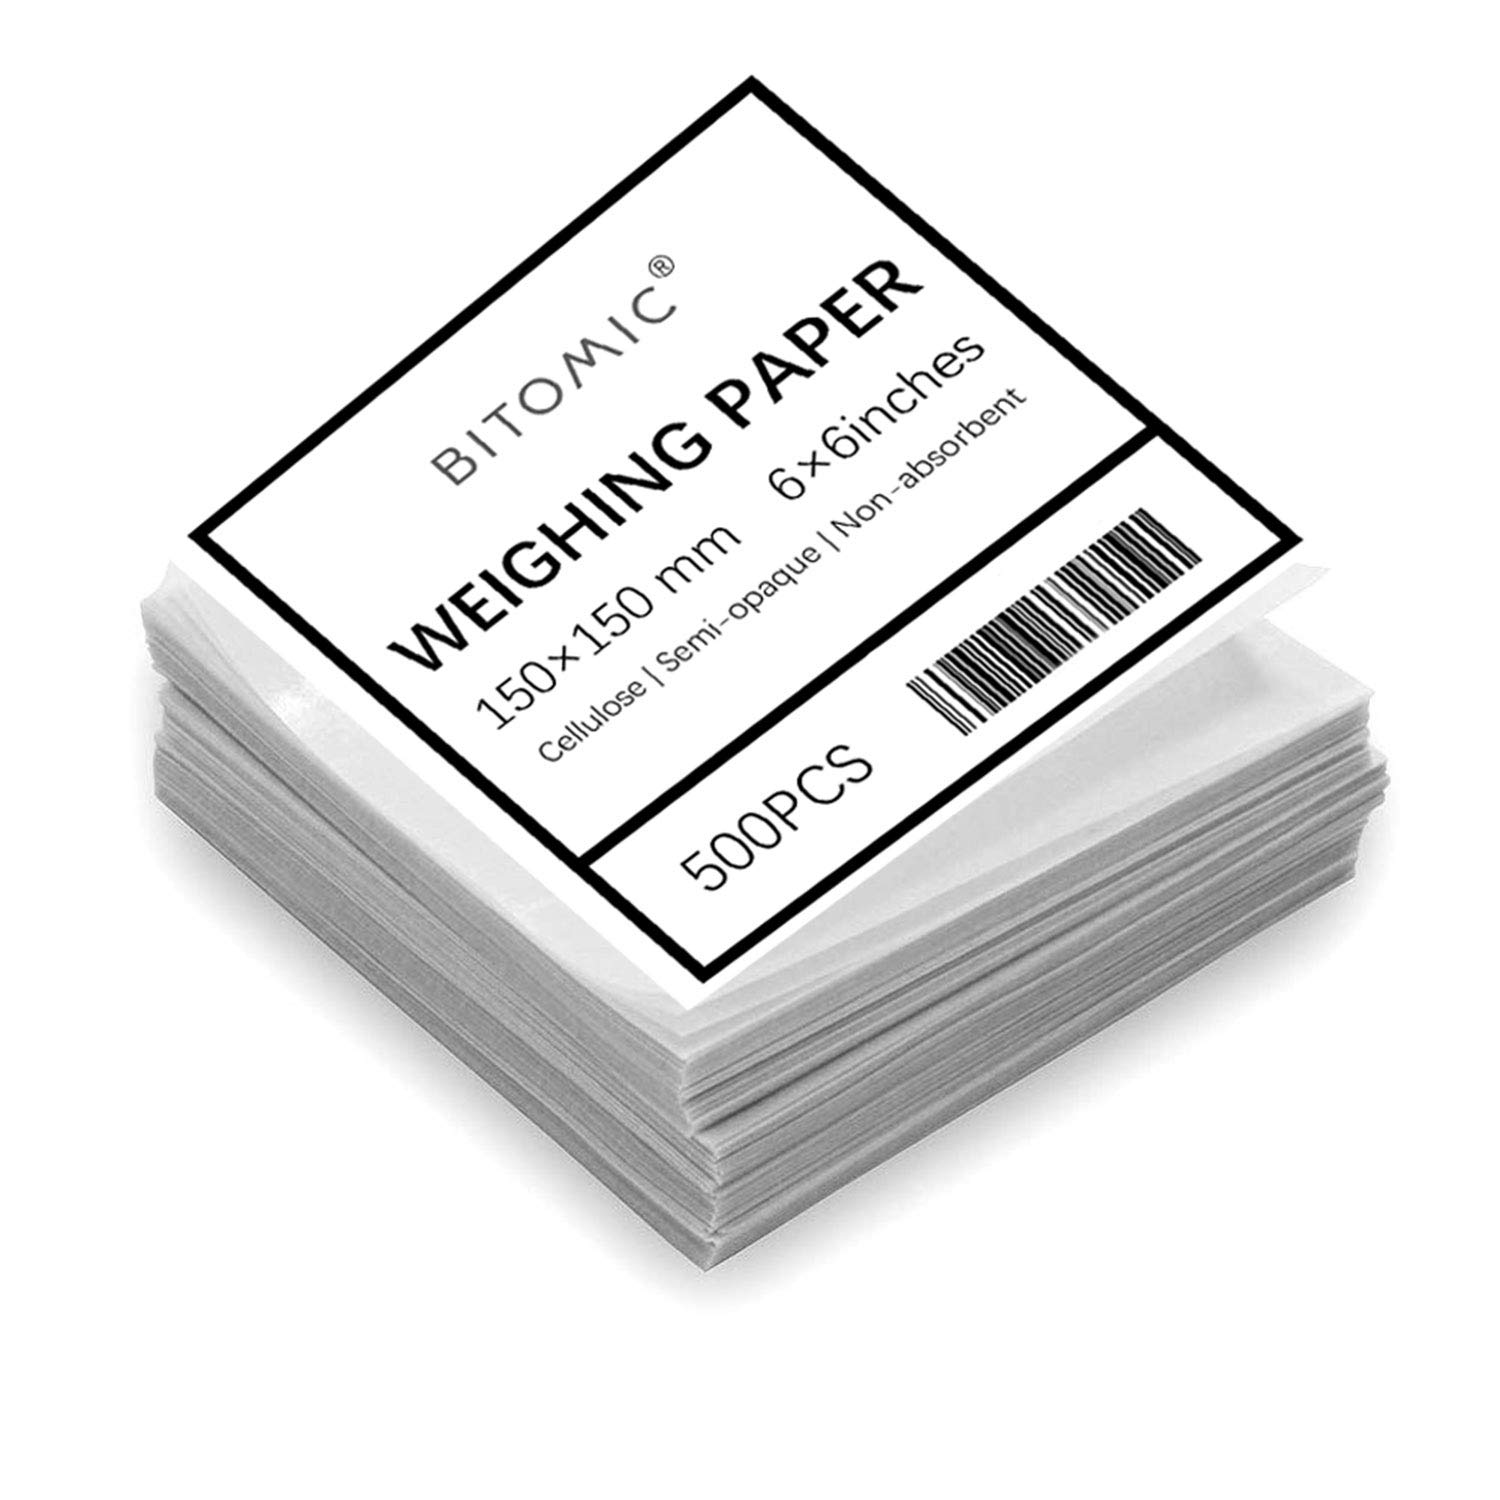 Bitomic 6x6 Cellulose Weighing Paper Sheet | Non-Stick Non-Absorbent Nitrogen-Free Gloss Paper Sheets | for Scale Measurement Samples Transfer | Laboratory Sample Weighing Paper| 6x6 Inches - 500 Pcs by Bitomic